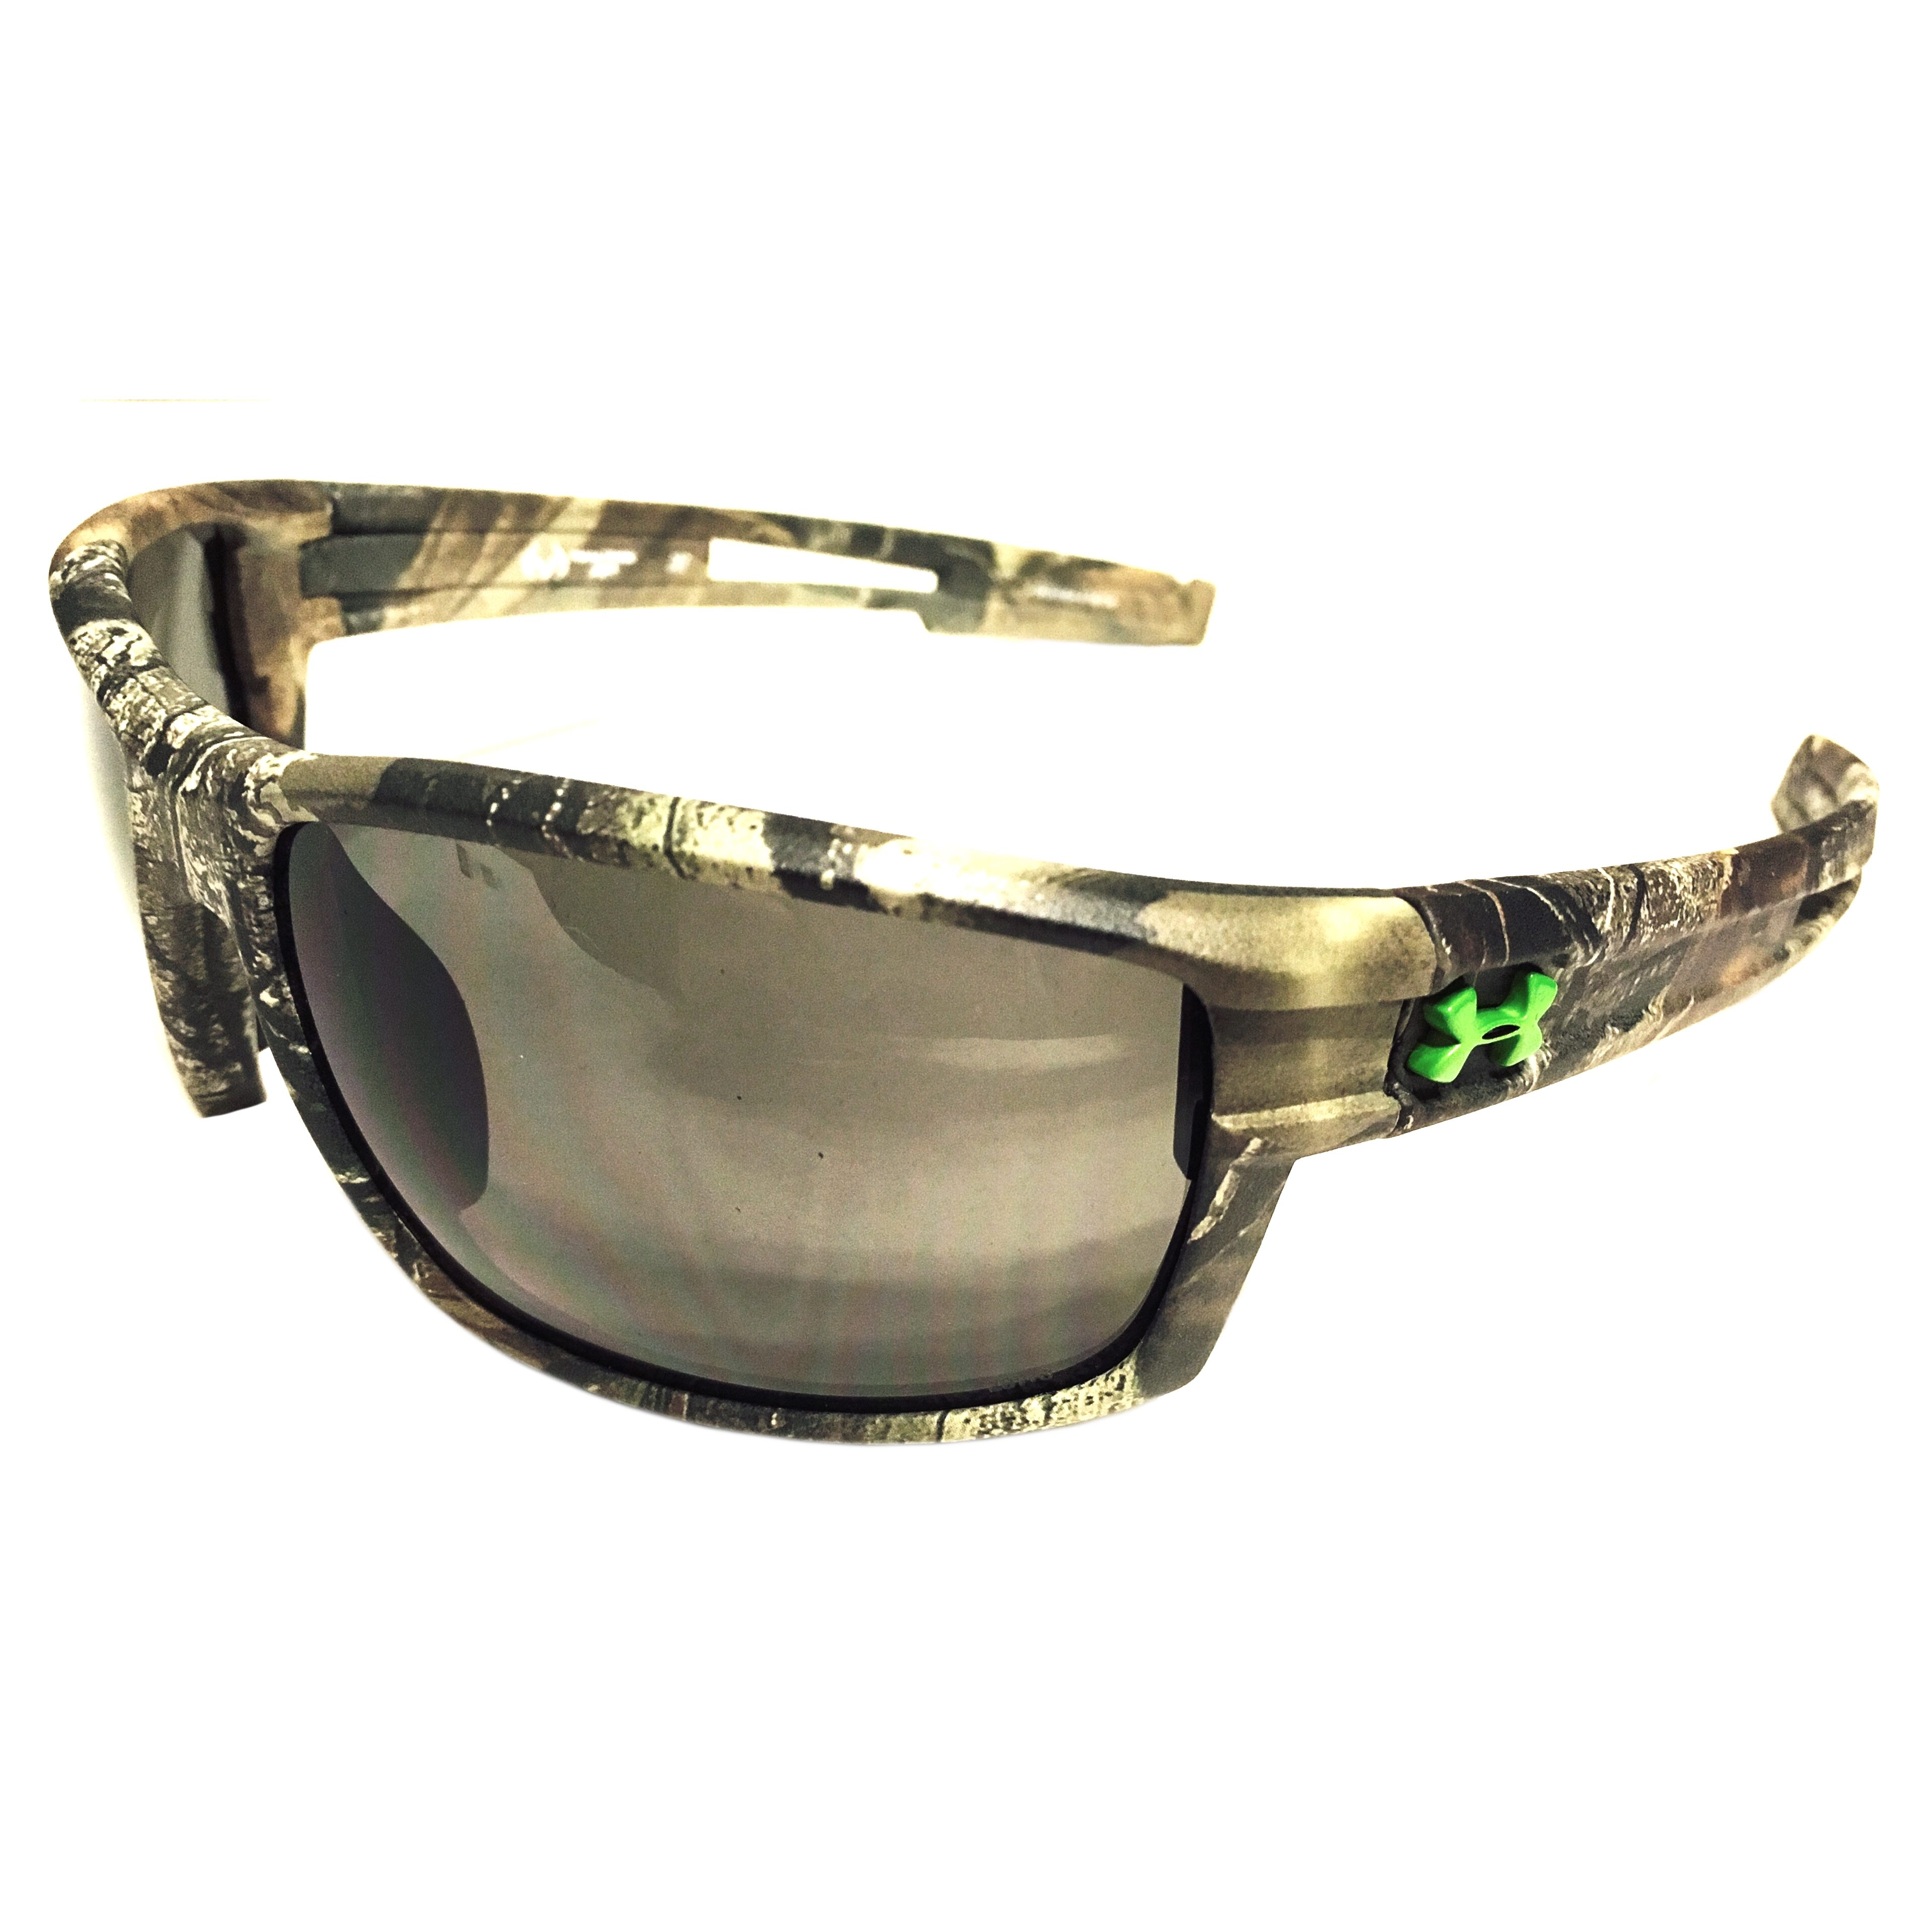 0c0f907dc6 Under Armour UA Captain Sunglasses – Satin Camo Realtree – Gray ANSI Z87.1  Rated Lenses